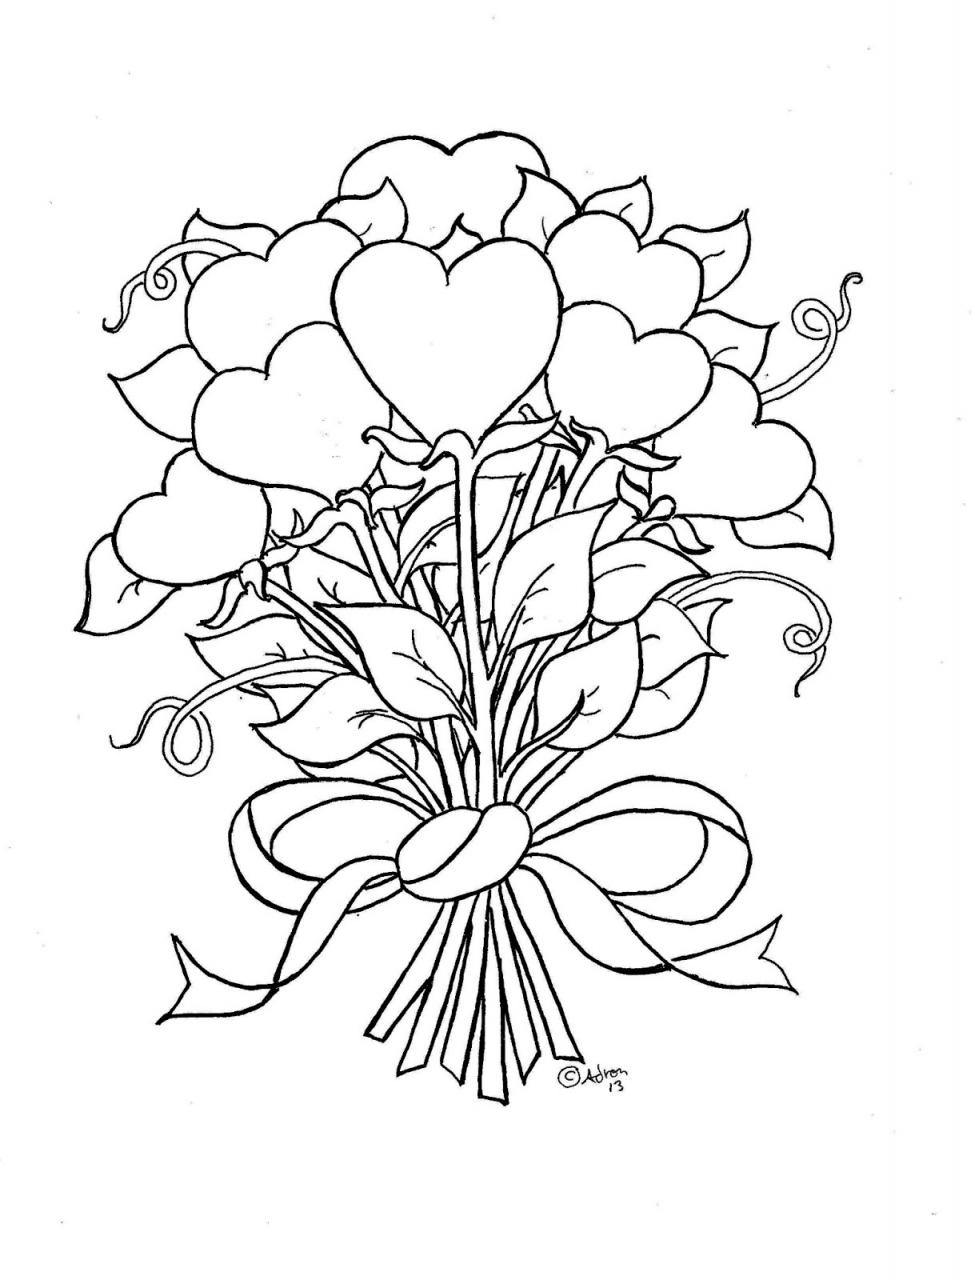 Colouring Pages Hearts And Flowers - Master Coloring Pages